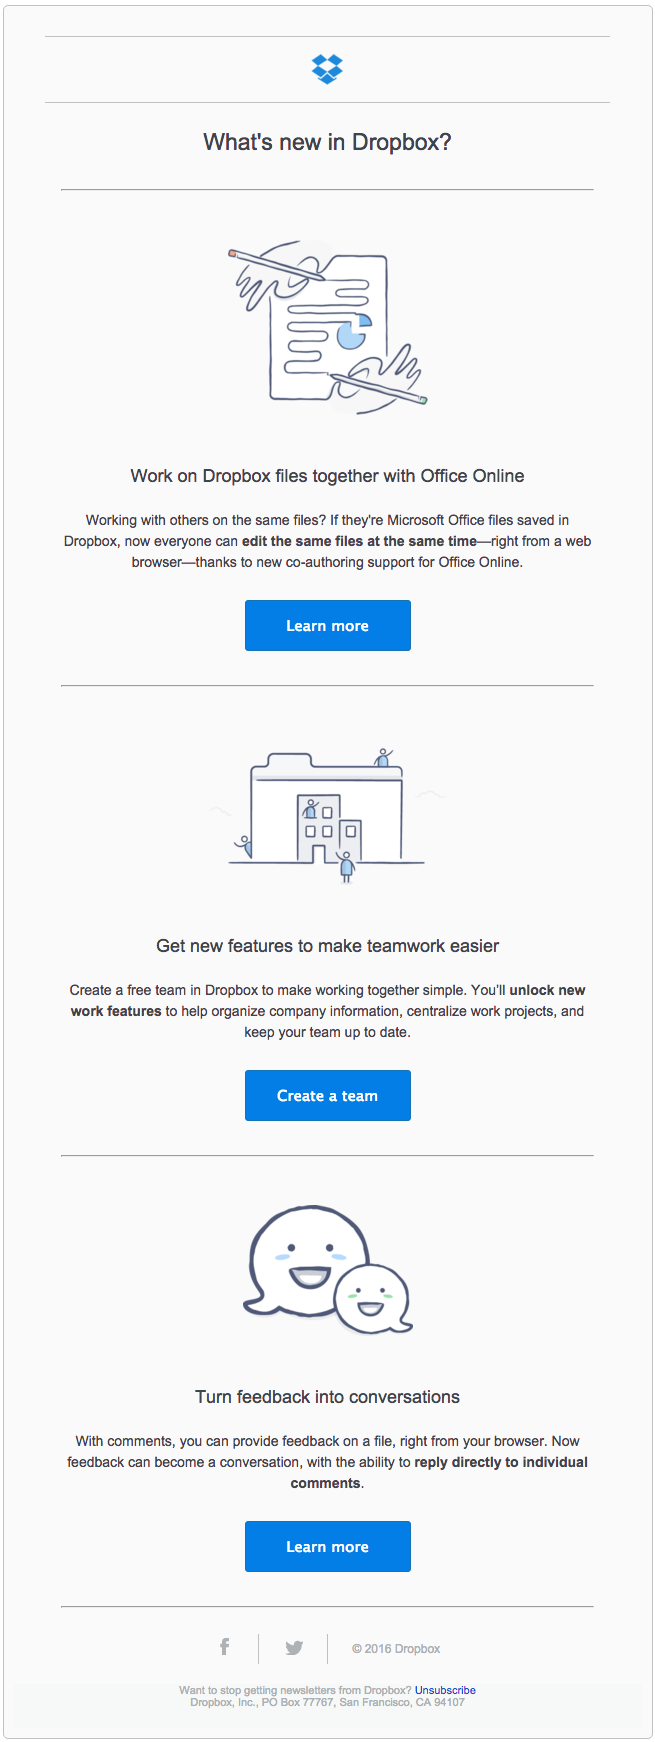 illustration in email: dropbox